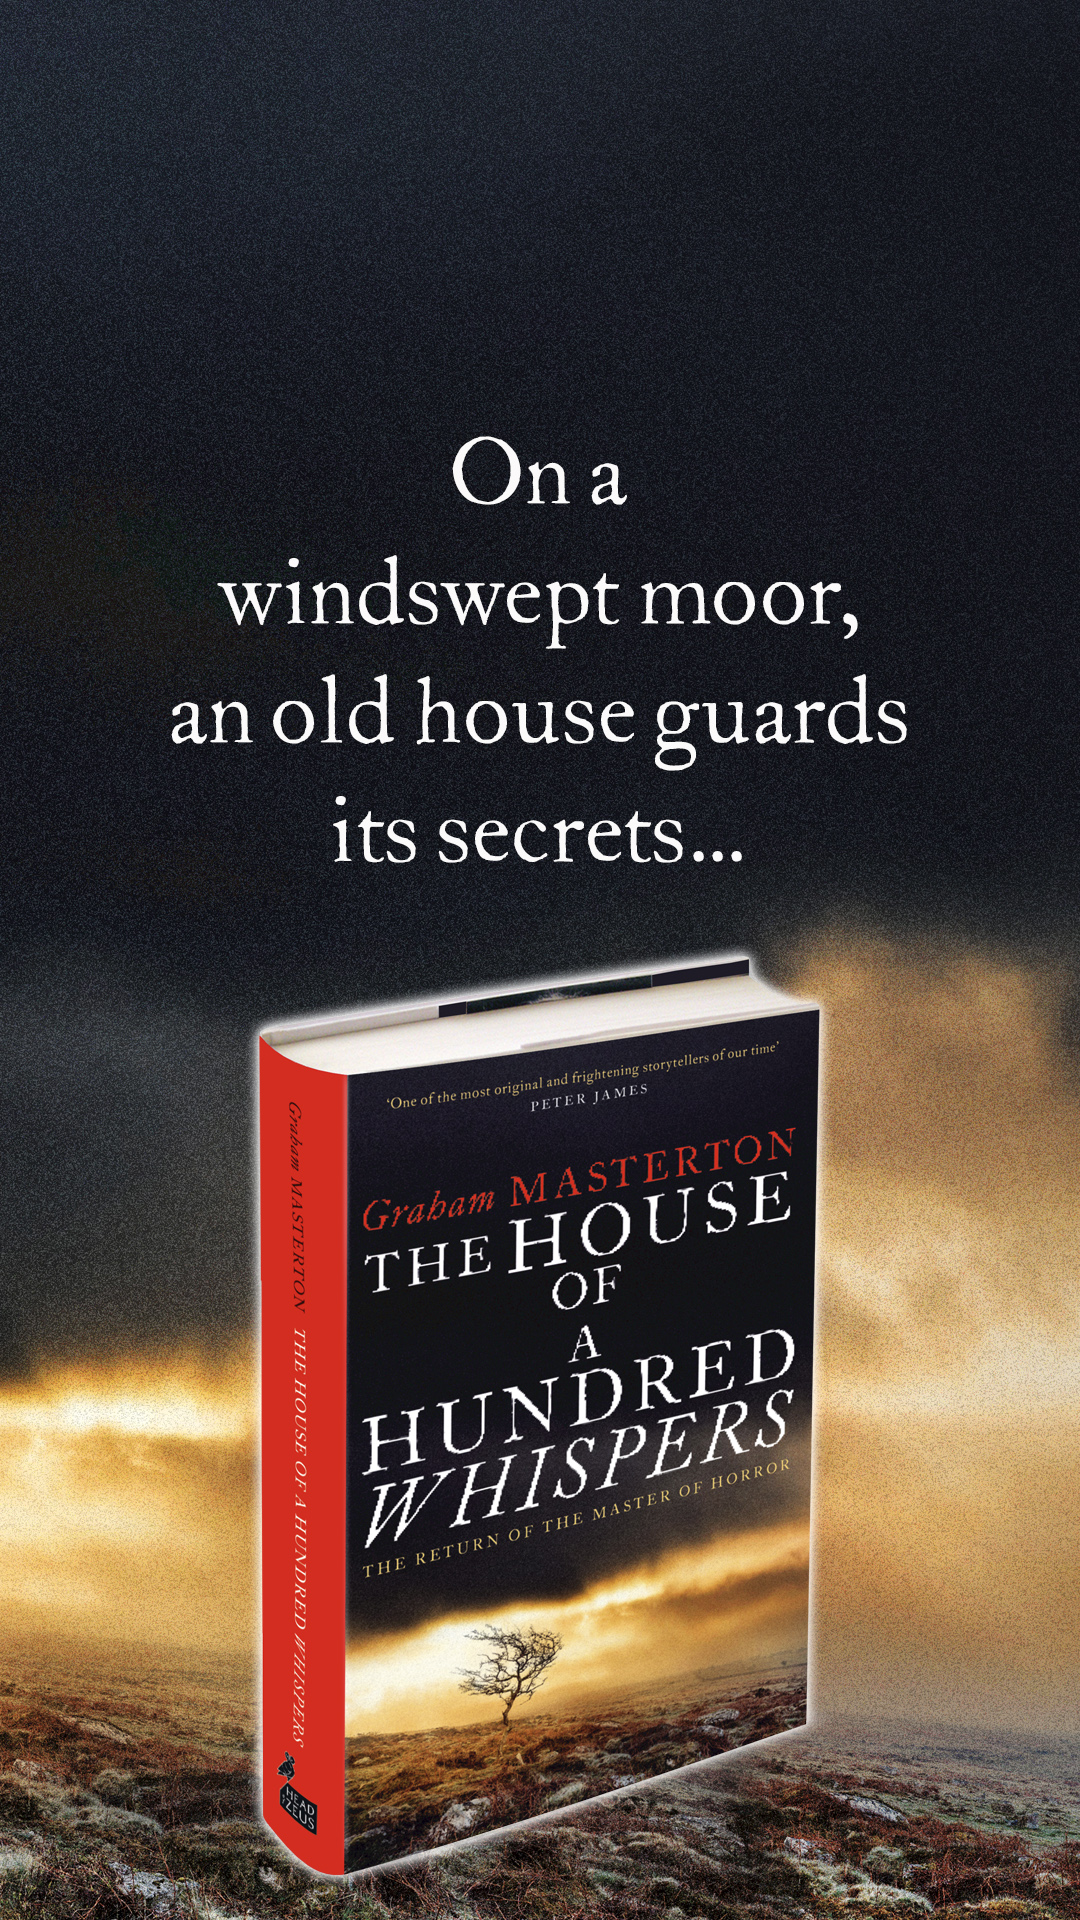 Hundred whispers author instagram story 1